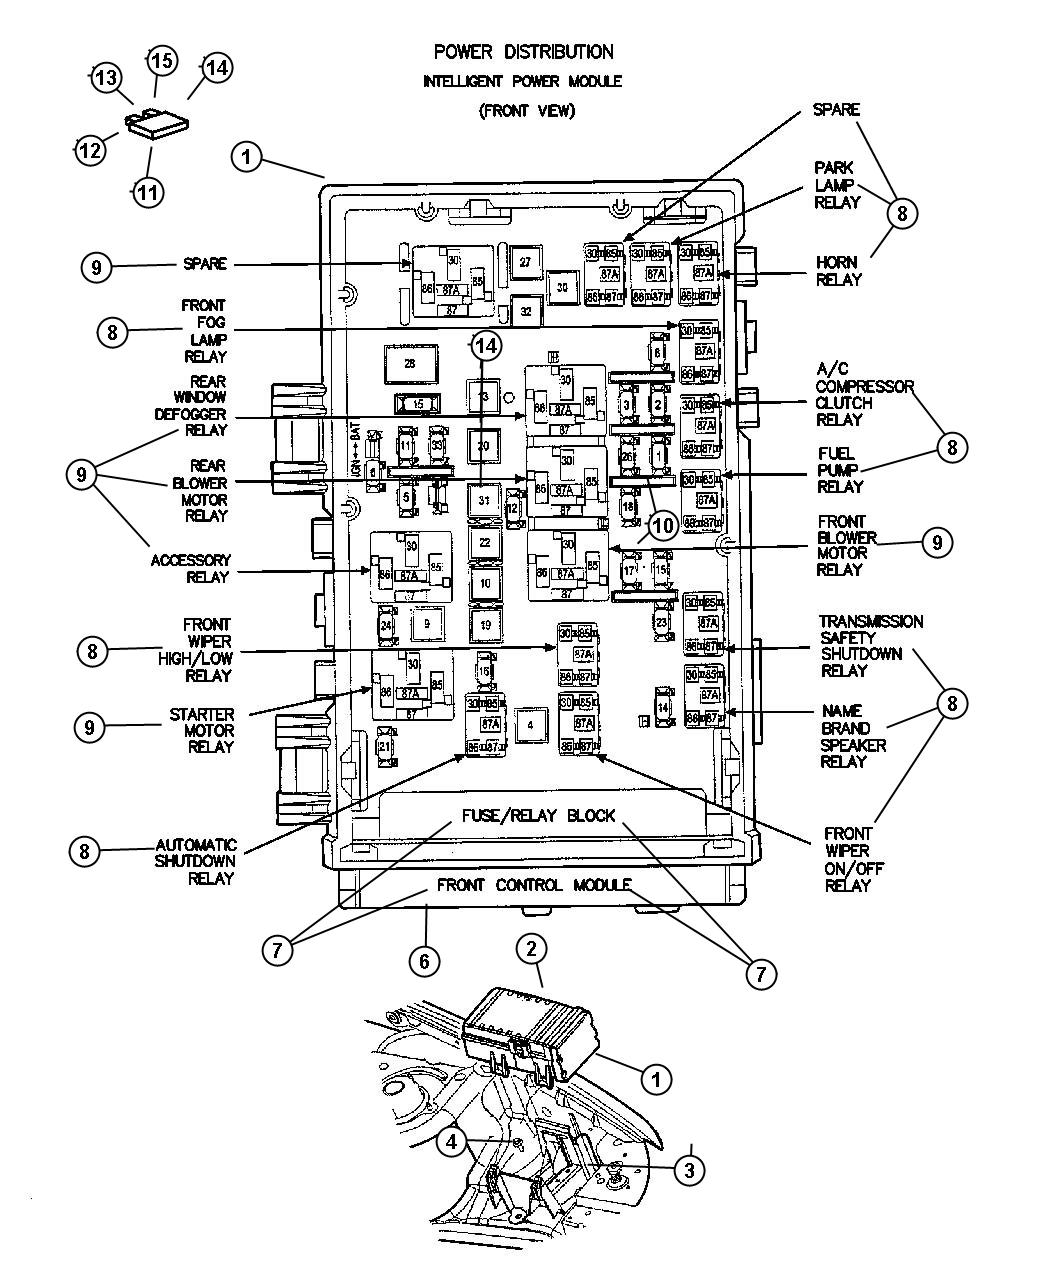 hight resolution of chrysler town and country fuse box diagram wiring 2012 chrysler town and country fuse box diagram